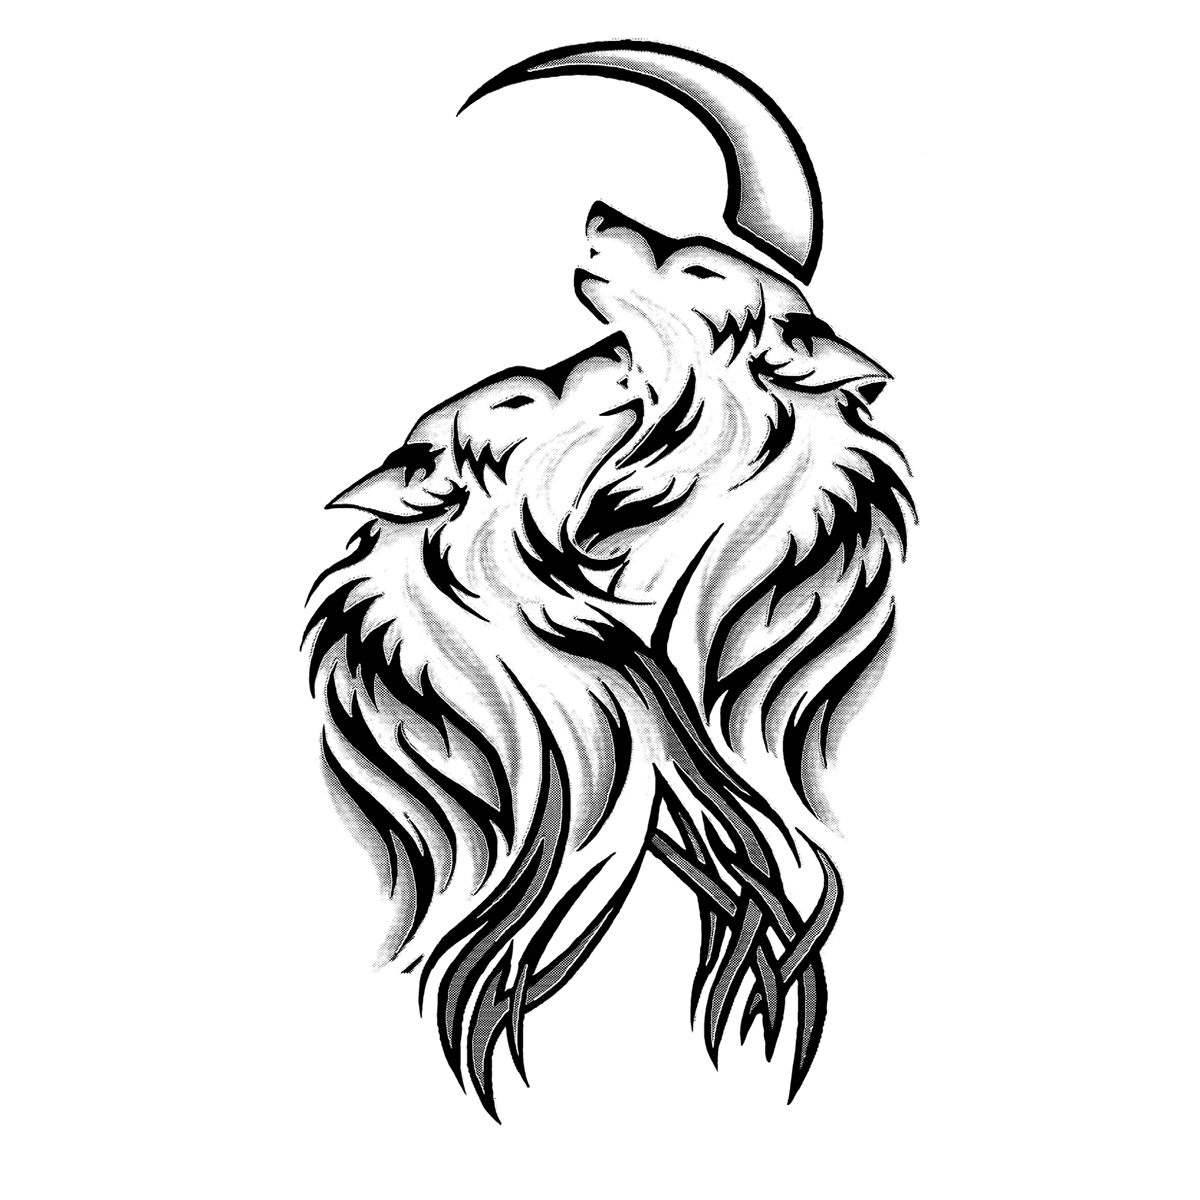 Wolf Moon Tattoo Illustration Wolves Png Transparent Clipart Image And Psd File For Free Download Wolf And Moon Tattoo Tribal Wolf Tattoo Wolf Tattoo Design